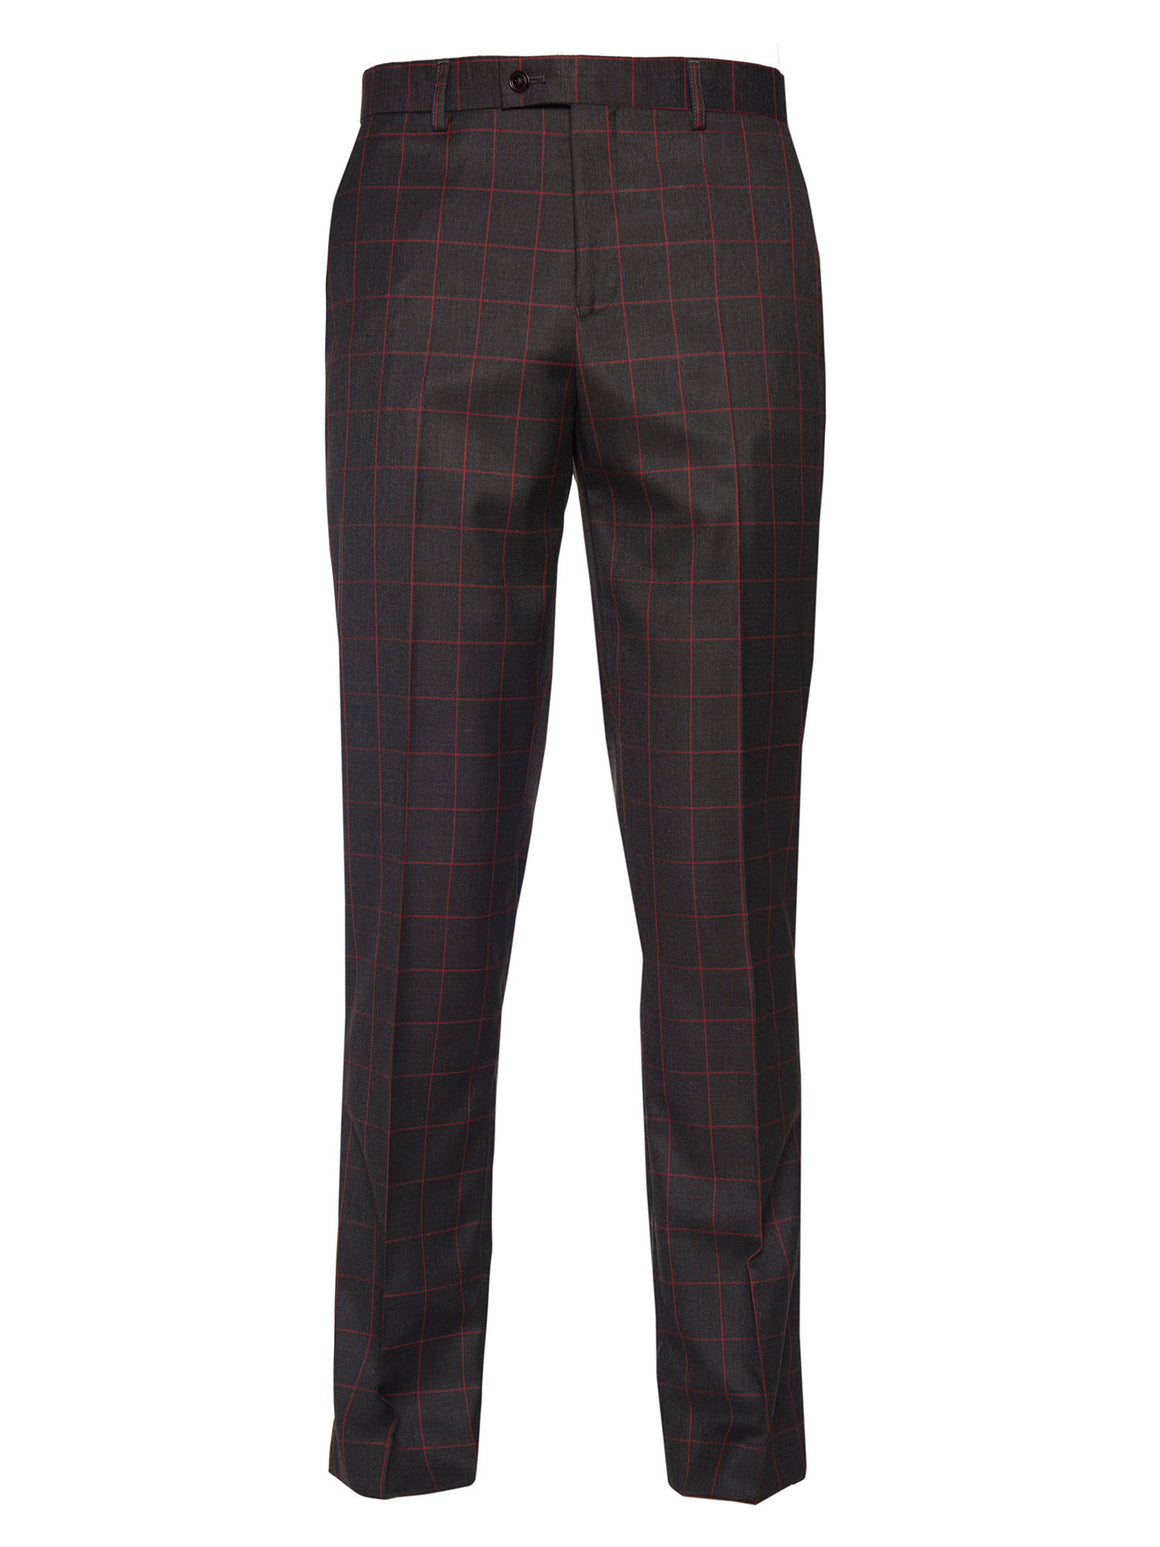 Downing Pant - Charcoal Red Windowpane